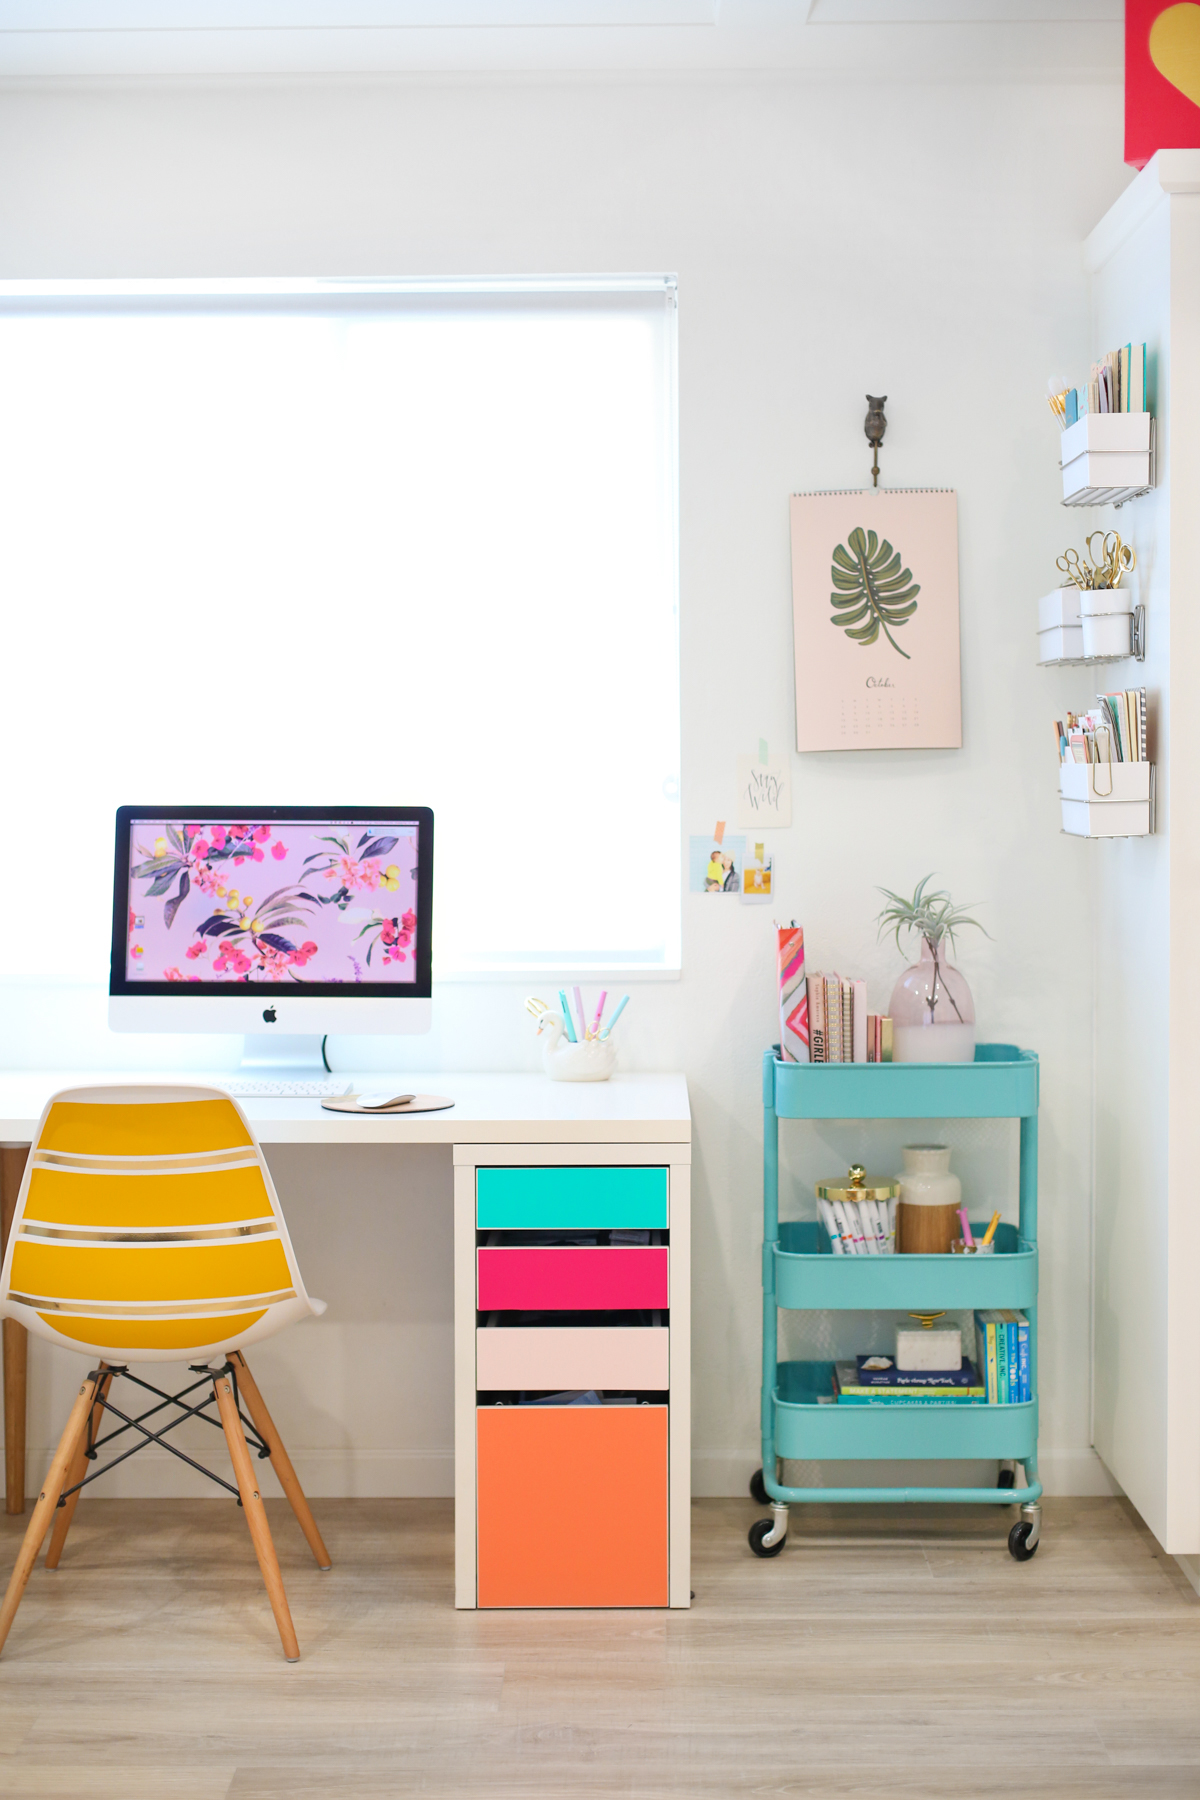 18 coolest diy ikea desk hacks to try shelterness. Black Bedroom Furniture Sets. Home Design Ideas